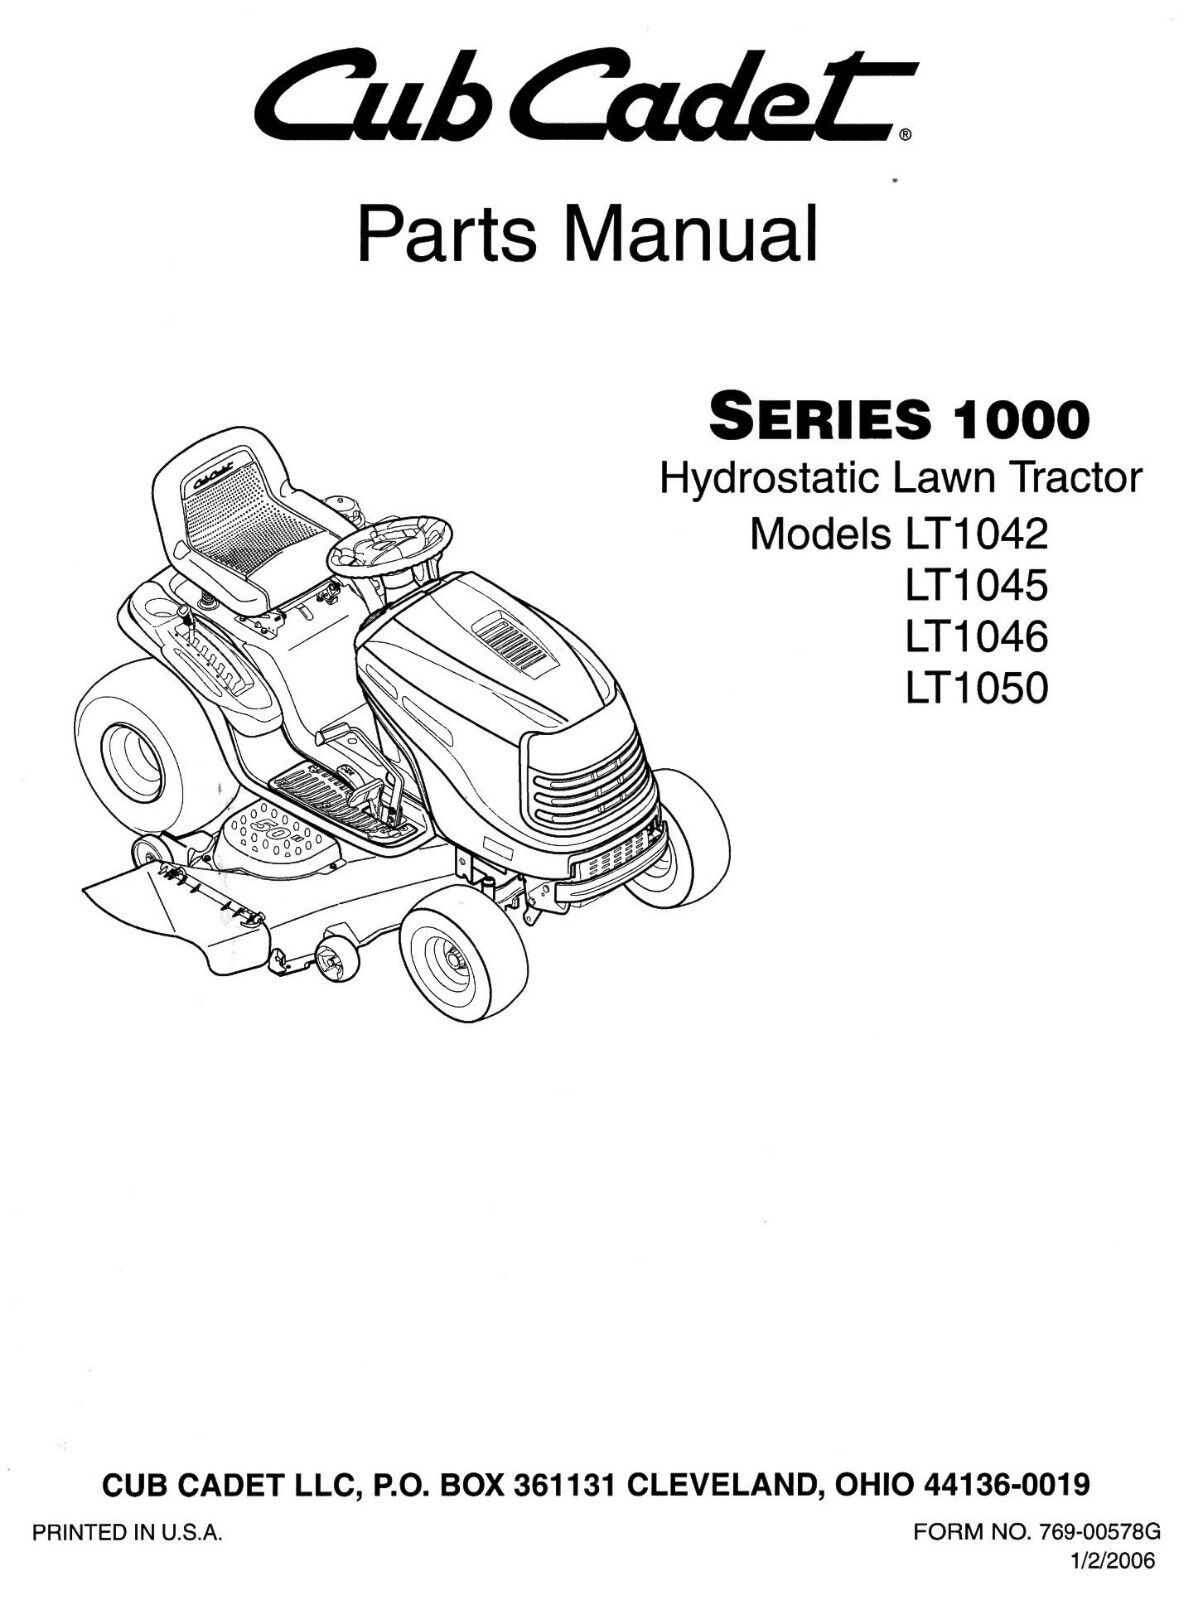 hight resolution of cub cadet parts manual for lt1042 lt1045 lt1046 lt1050 for sale cub cadet parts diagram lt1045 cub cadet parts diagram